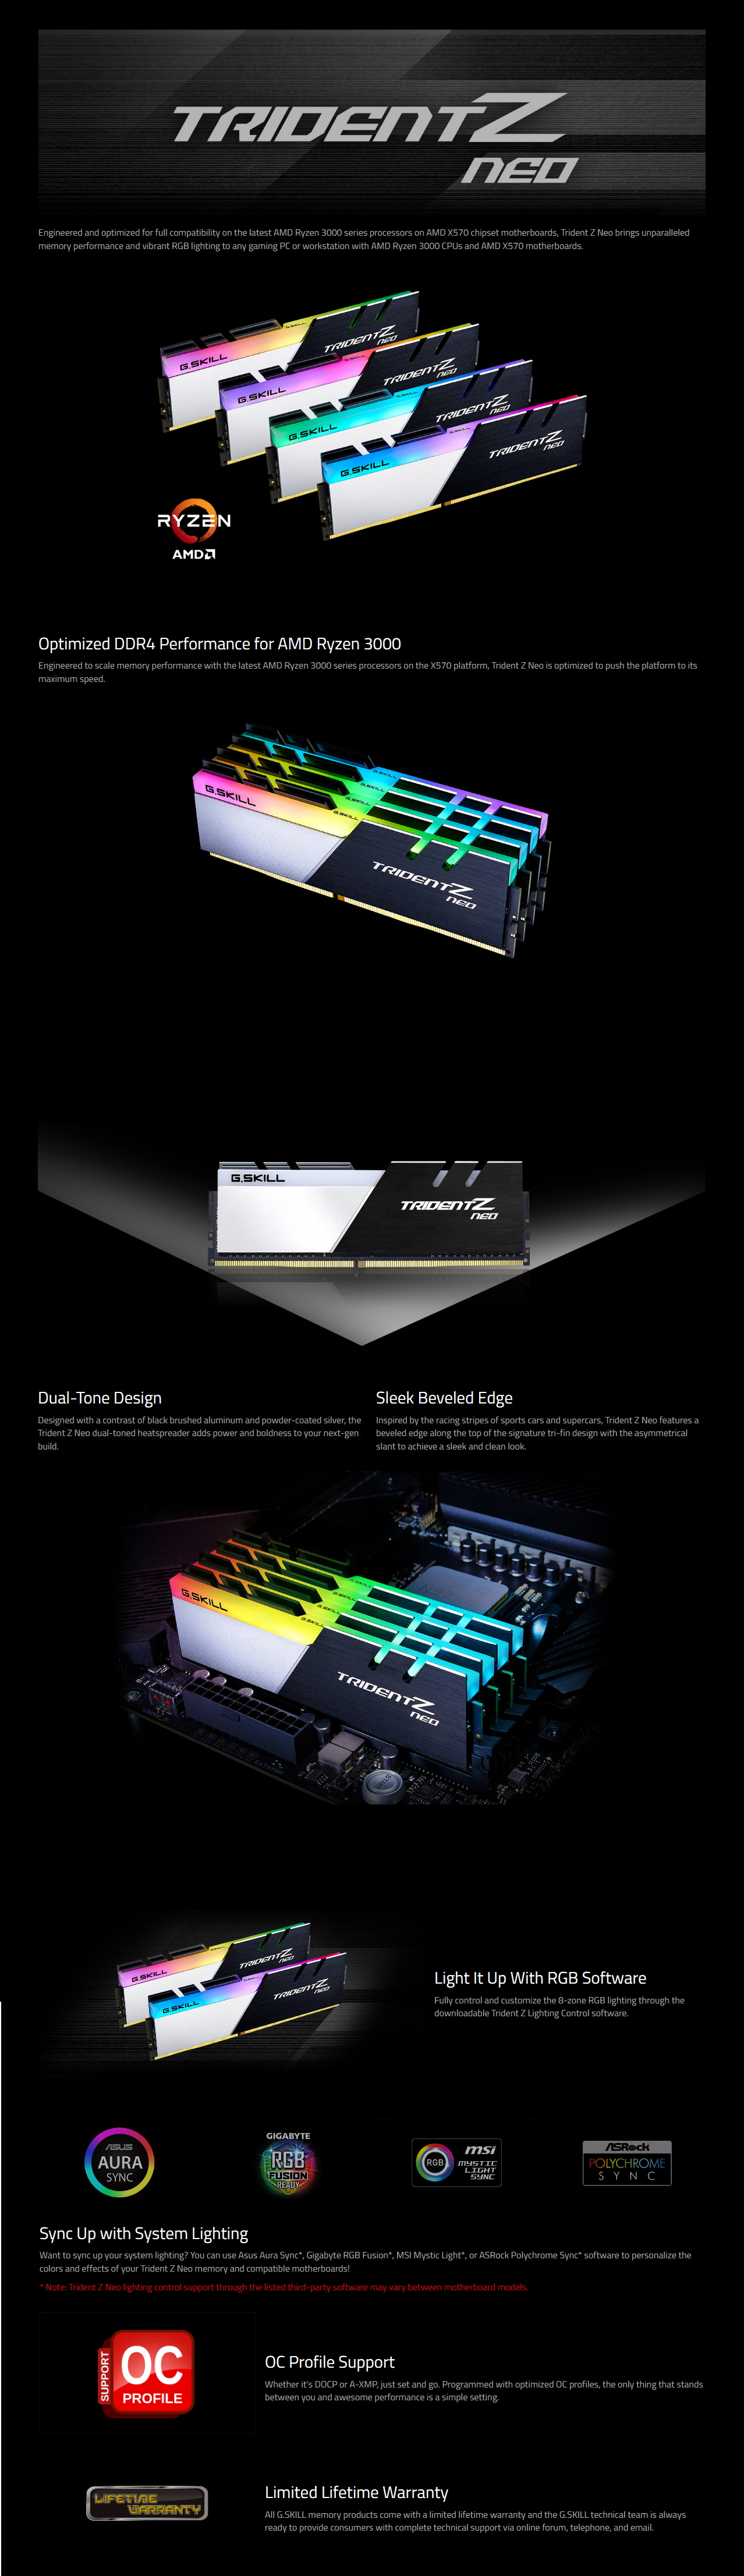 A large marketing image providing additional information about the product G.Skill 16GB Kit (2x8GB) DDR4 Trident Z RGB Neo C16 3600Mhz - Additional alt info not provided